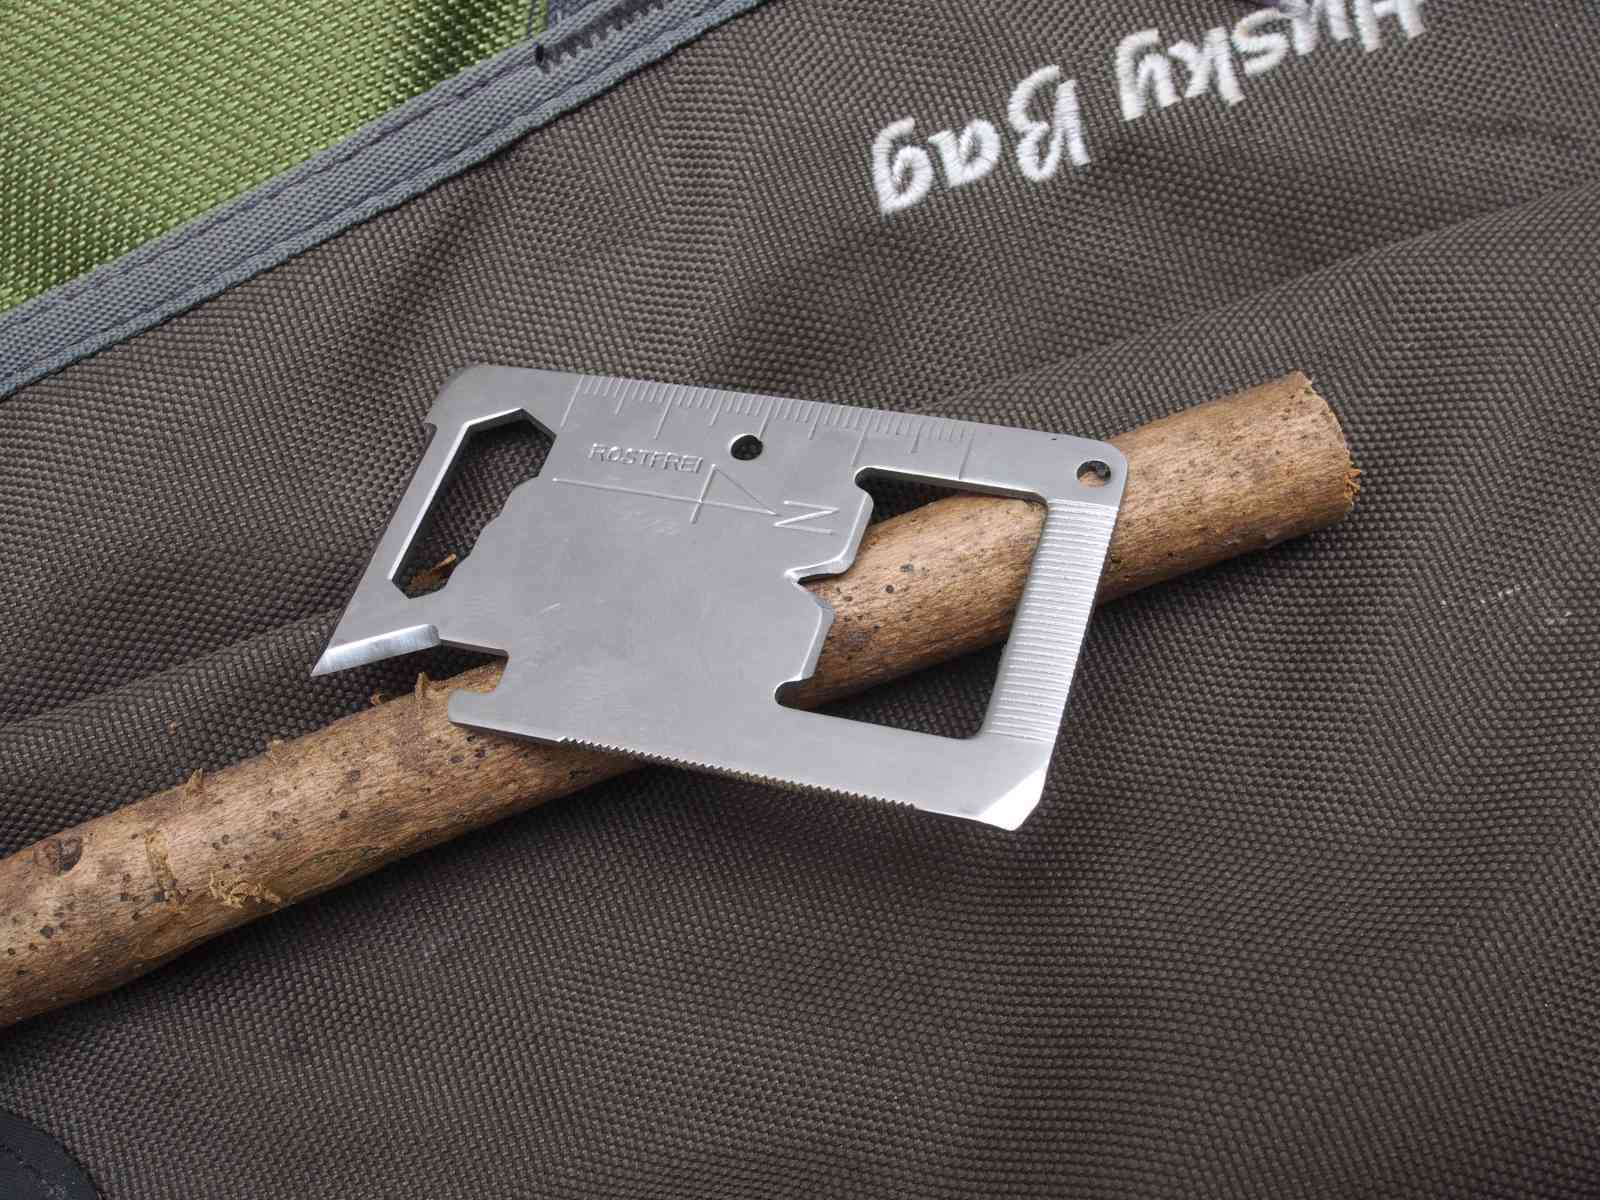 Mein Survival-Kit - Herbertz Campingtool